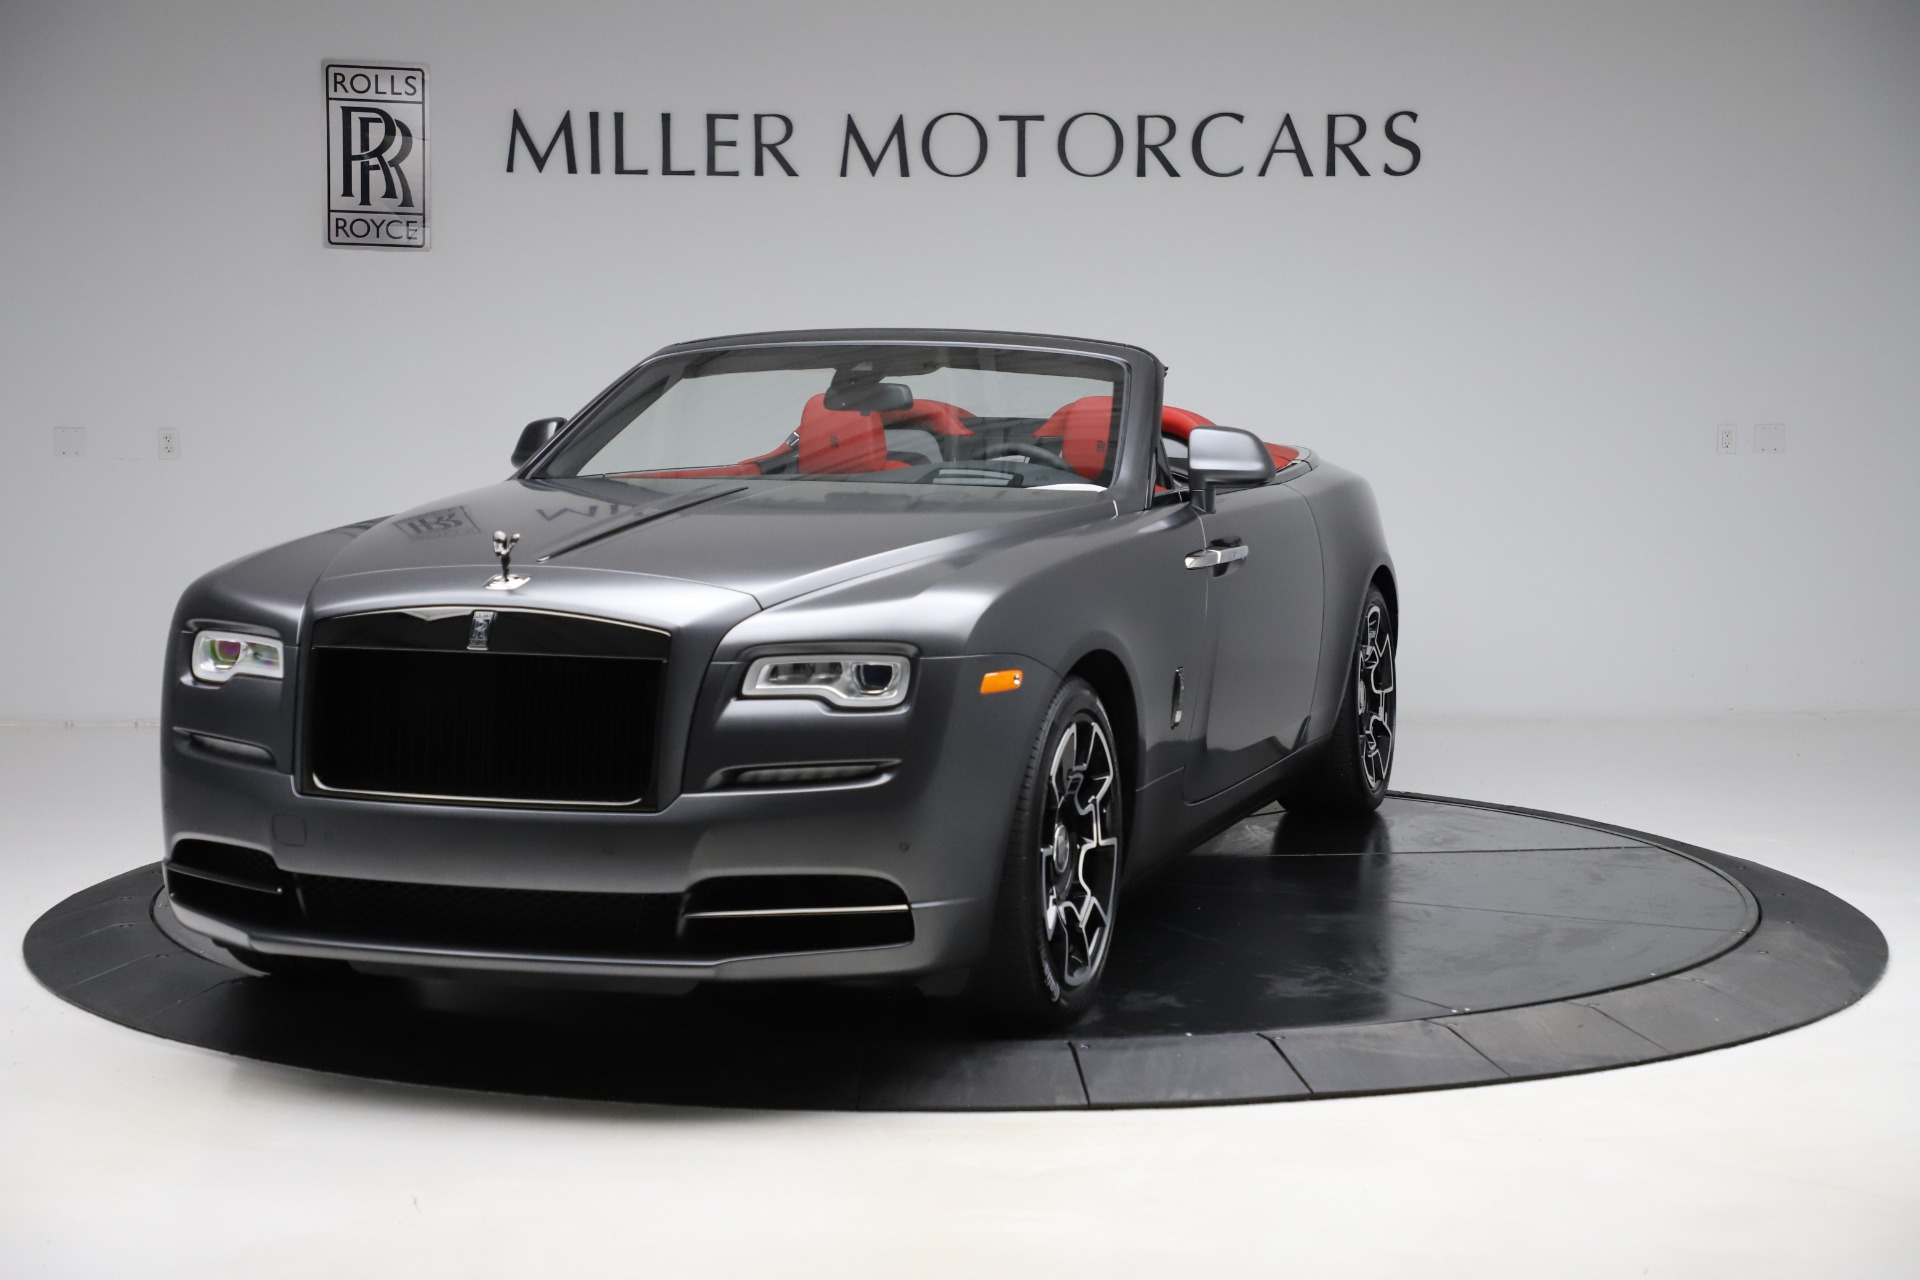 New 2020 Rolls Royce Dawn Black Badge For Sale 477 975